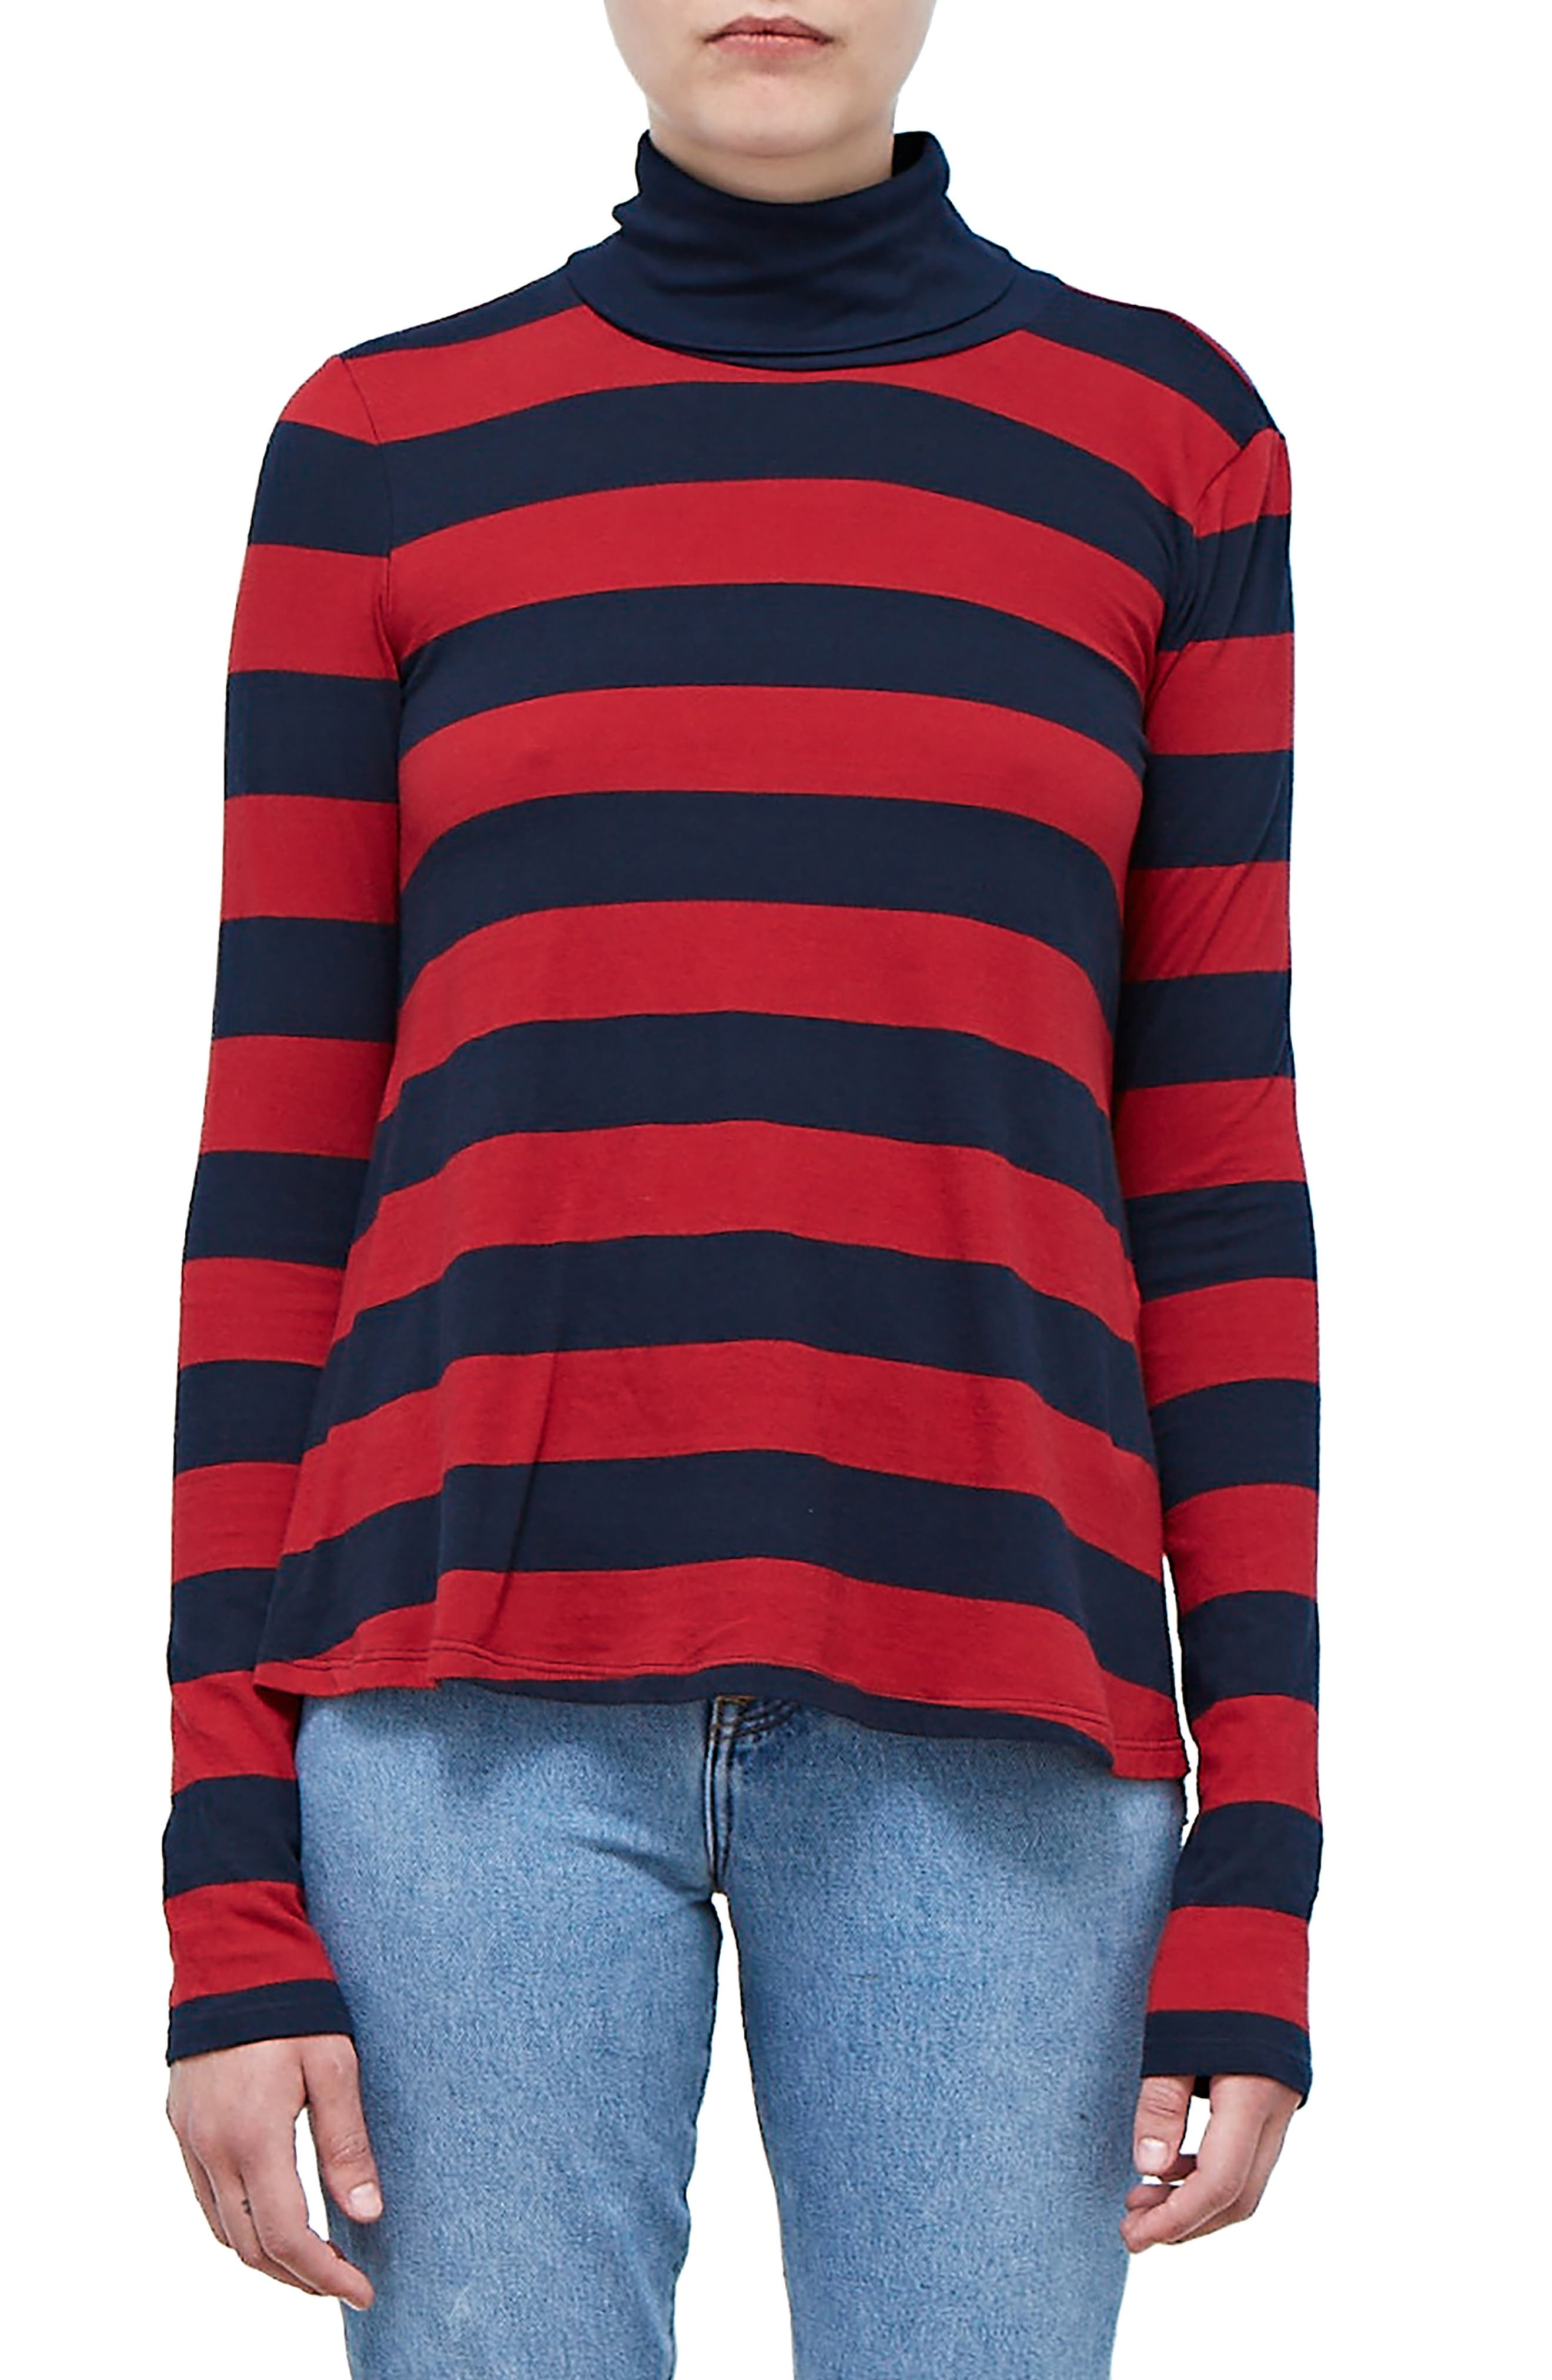 Rugby Stripe Turtleneck Top,                             Main thumbnail 1, color,                             NAVY/ DEEP RED